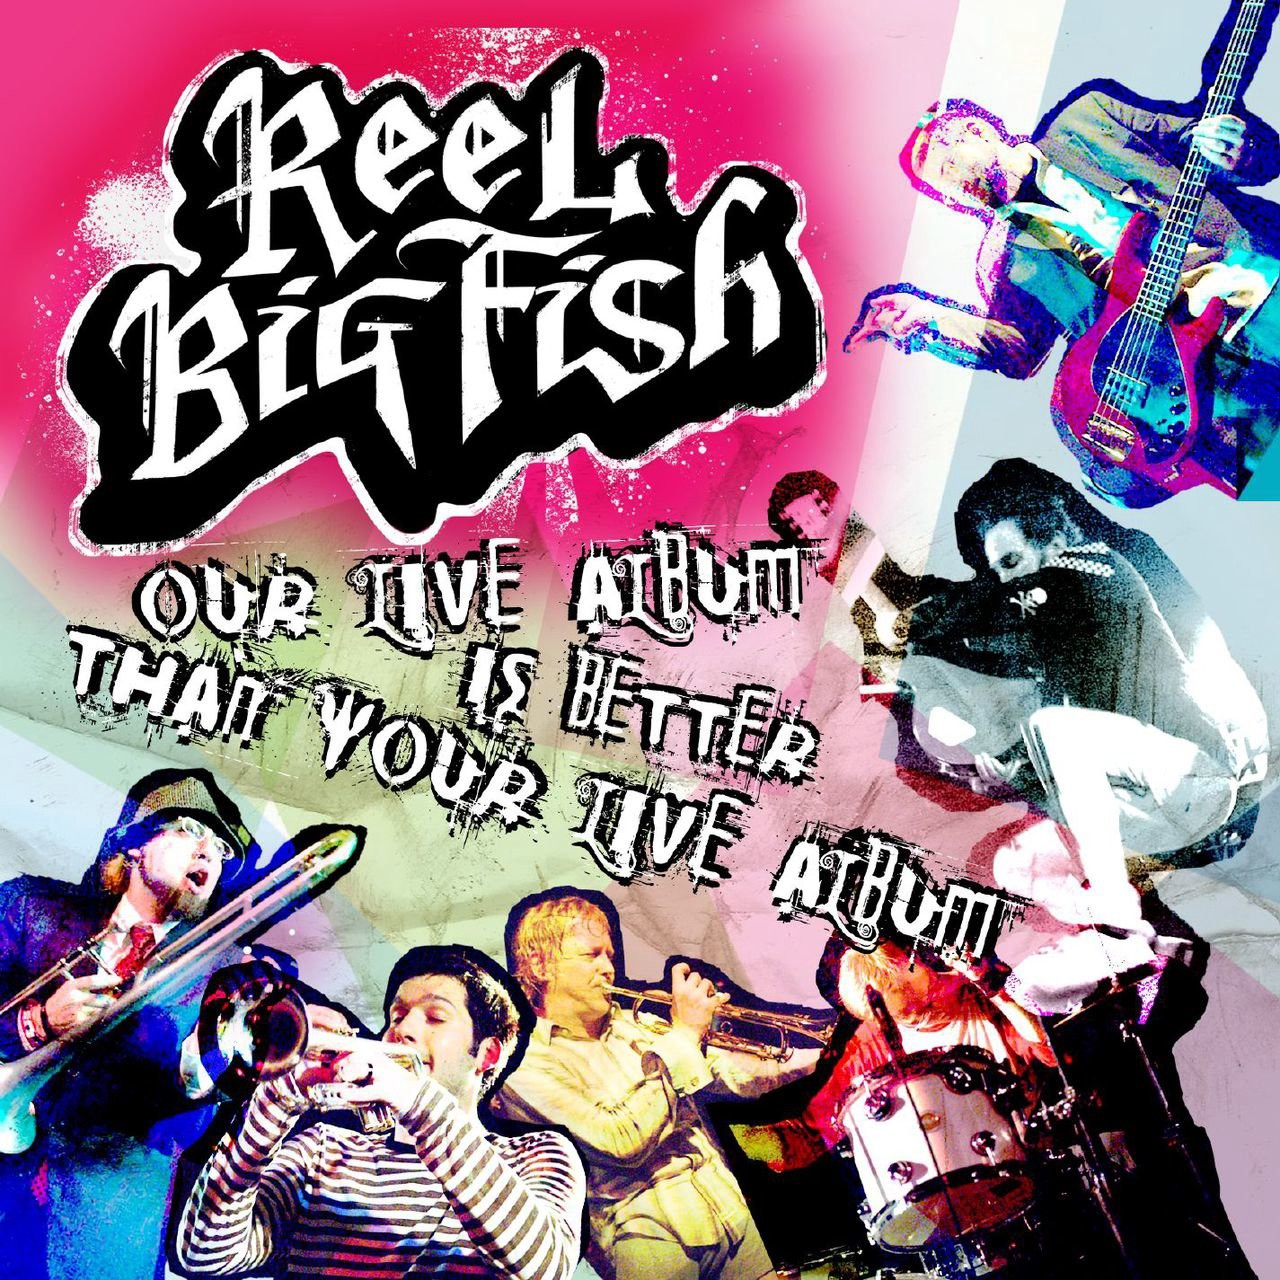 Reel Big Fish's Live Album Is So Much Better Than Yours